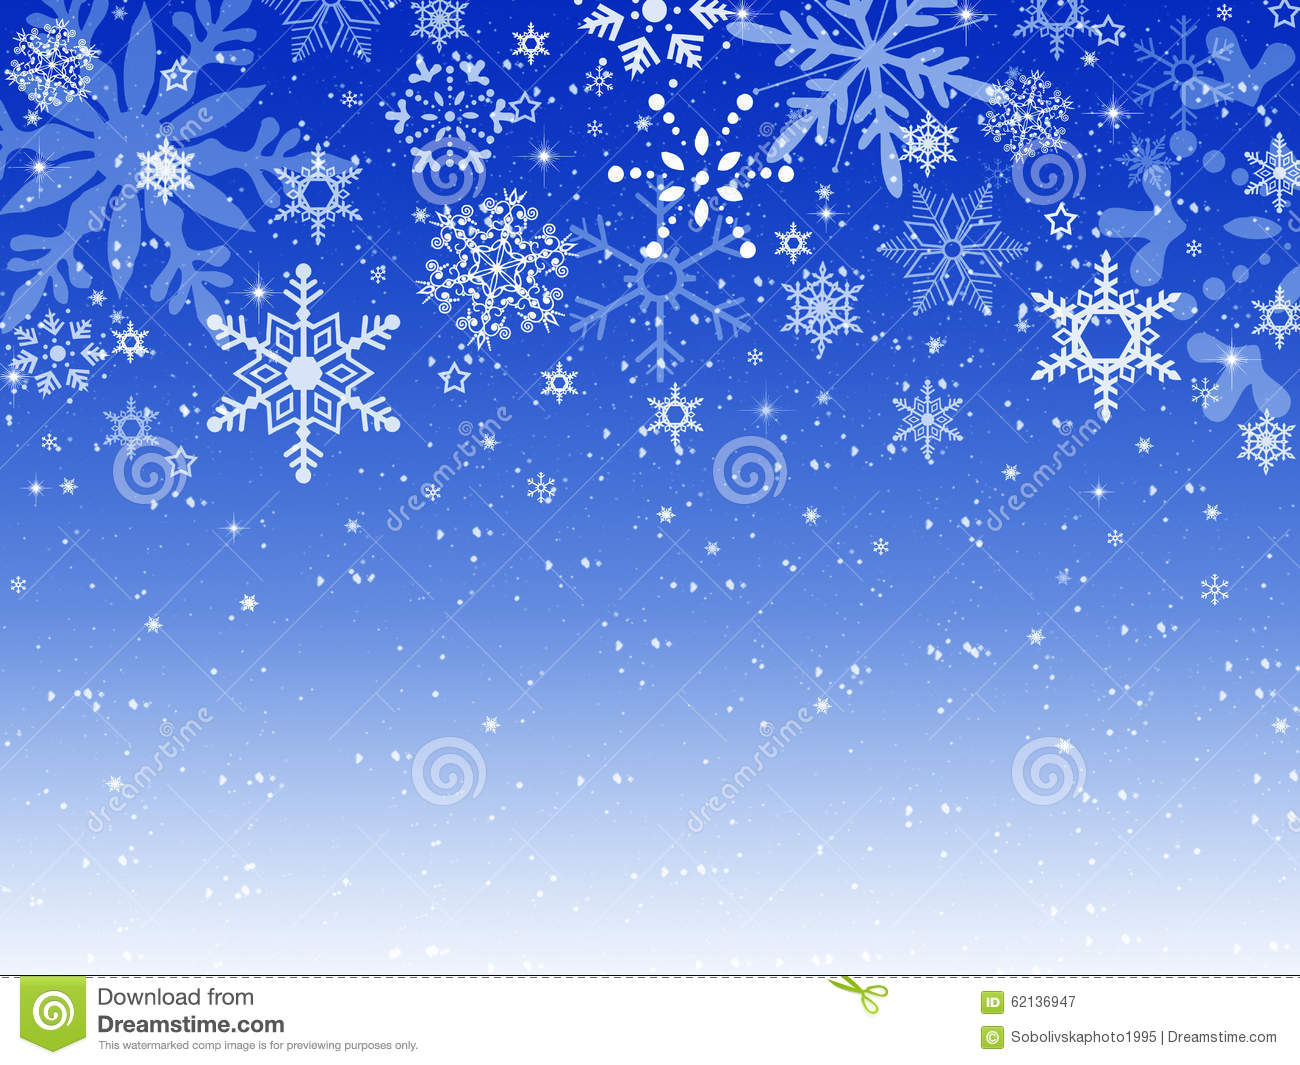 merry christmas happy new year background blue snow